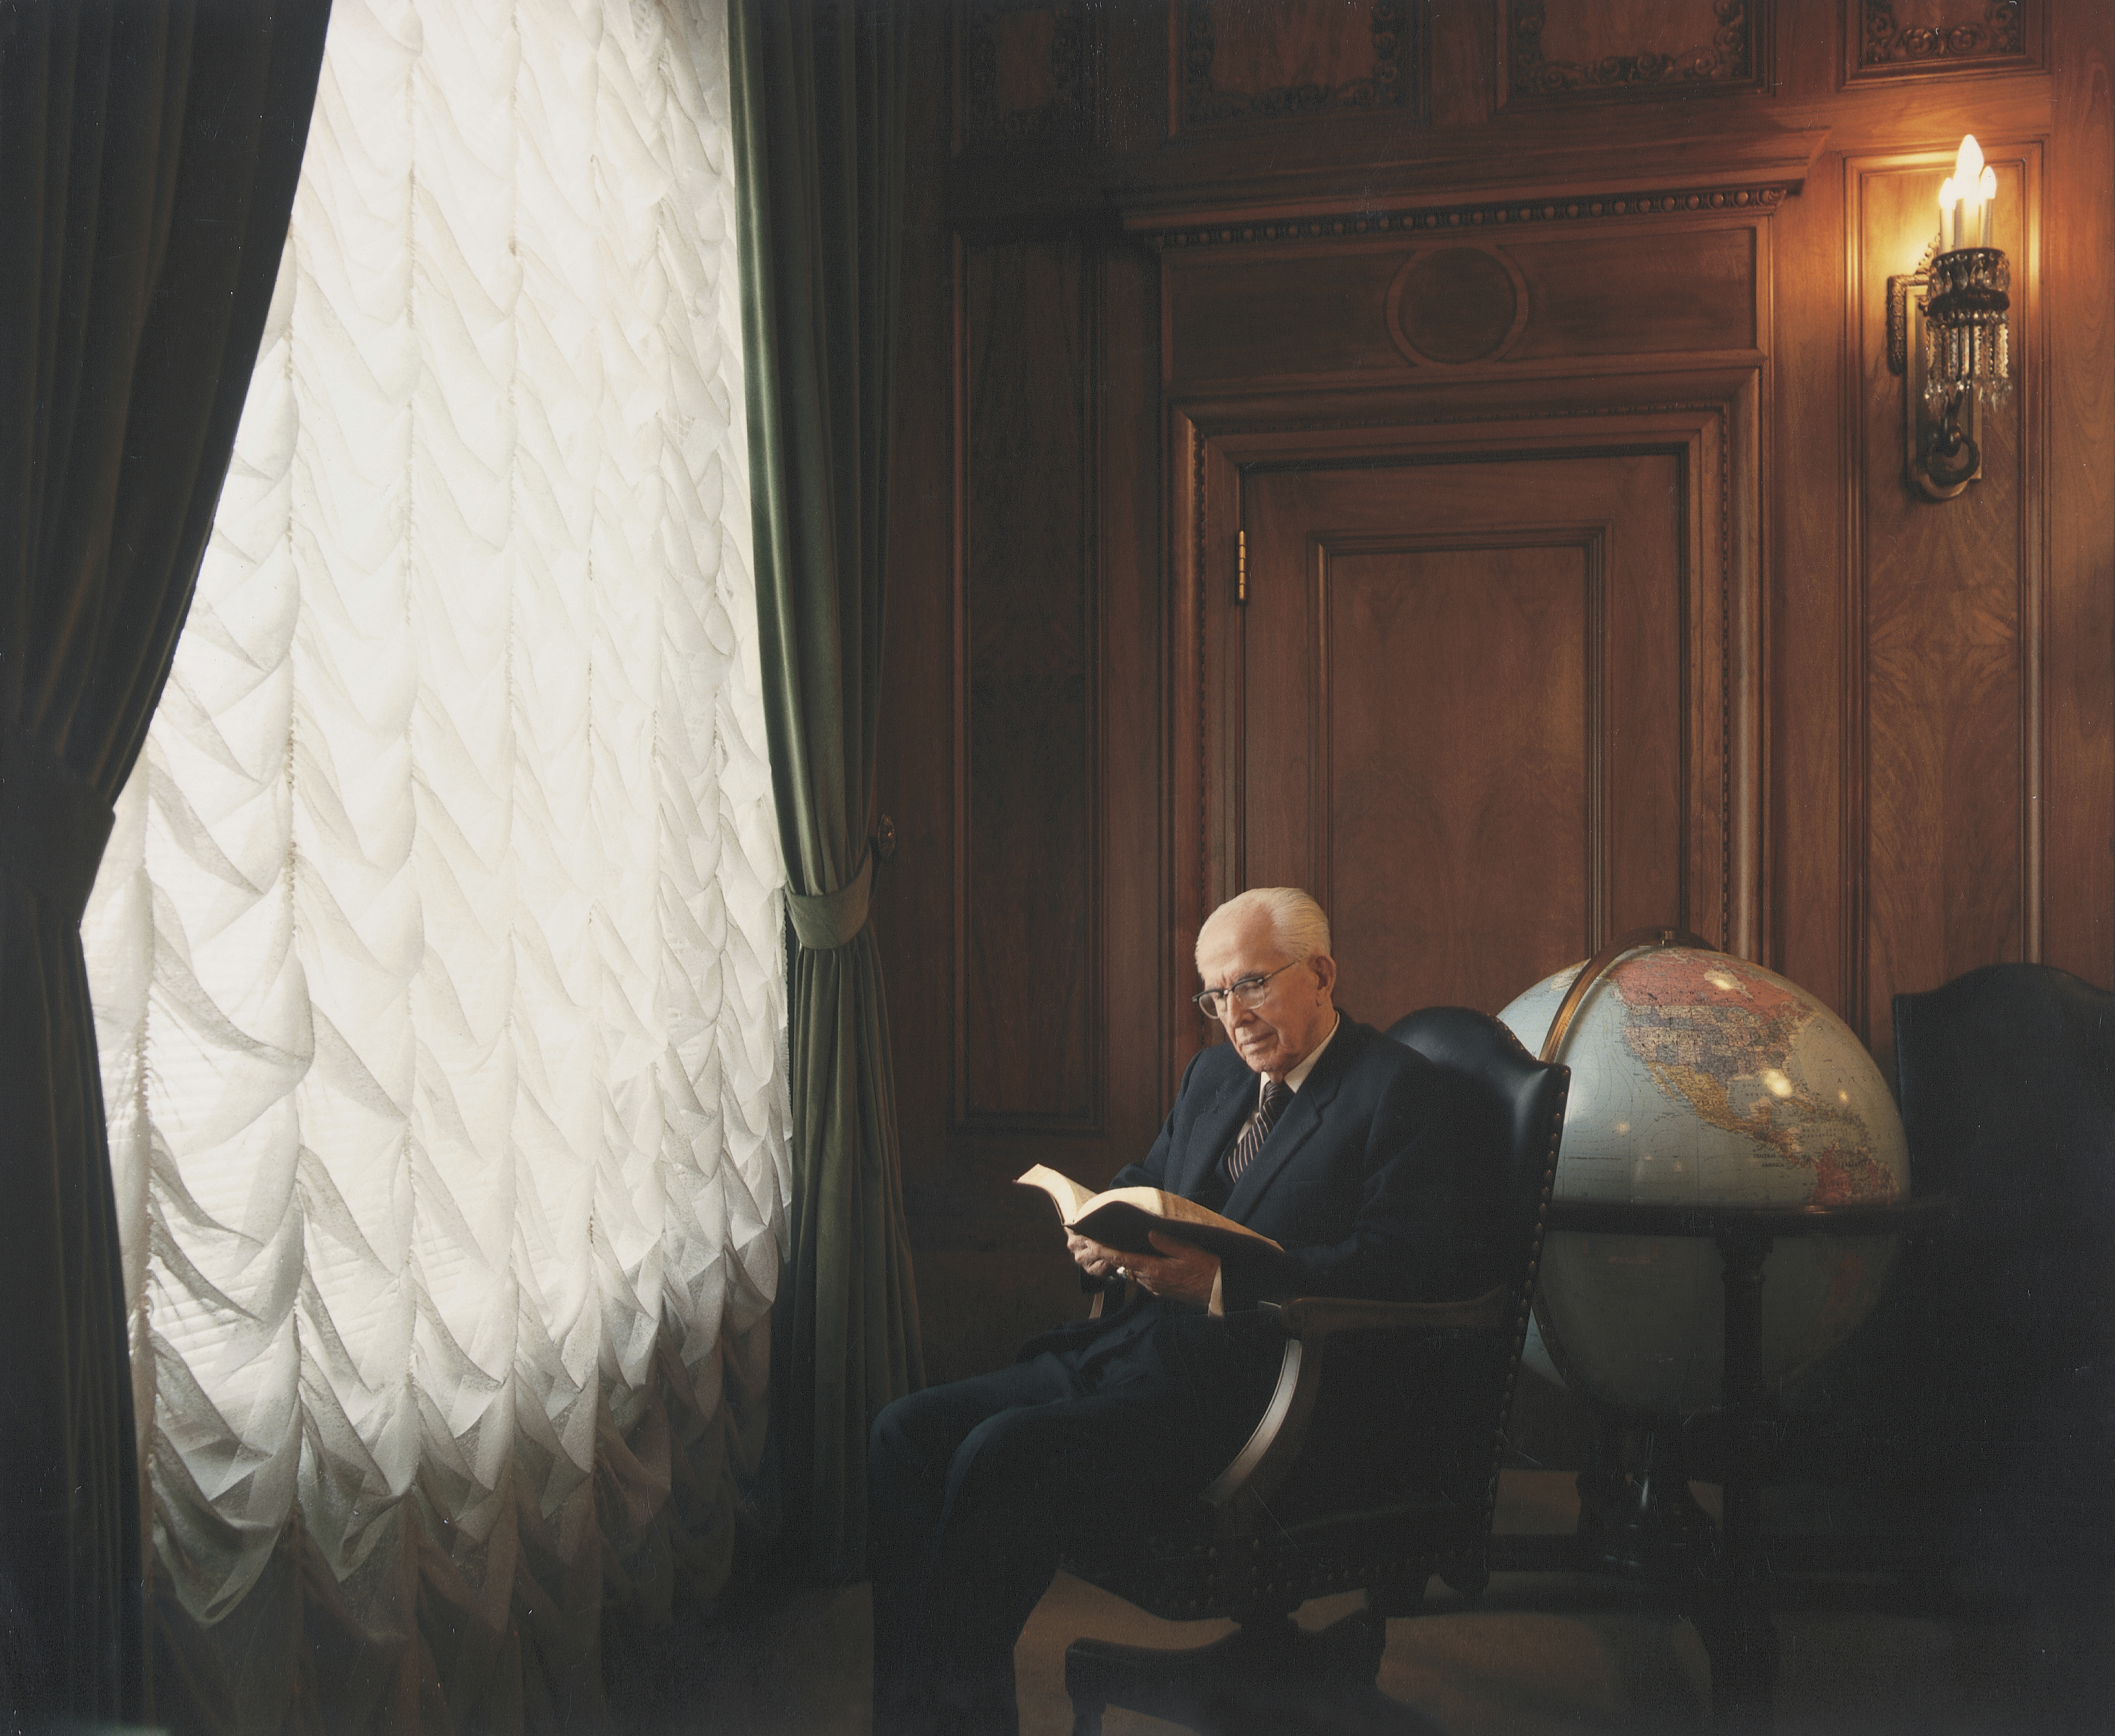 President Benson sitting and reading scriptures, with a large globe in the background.